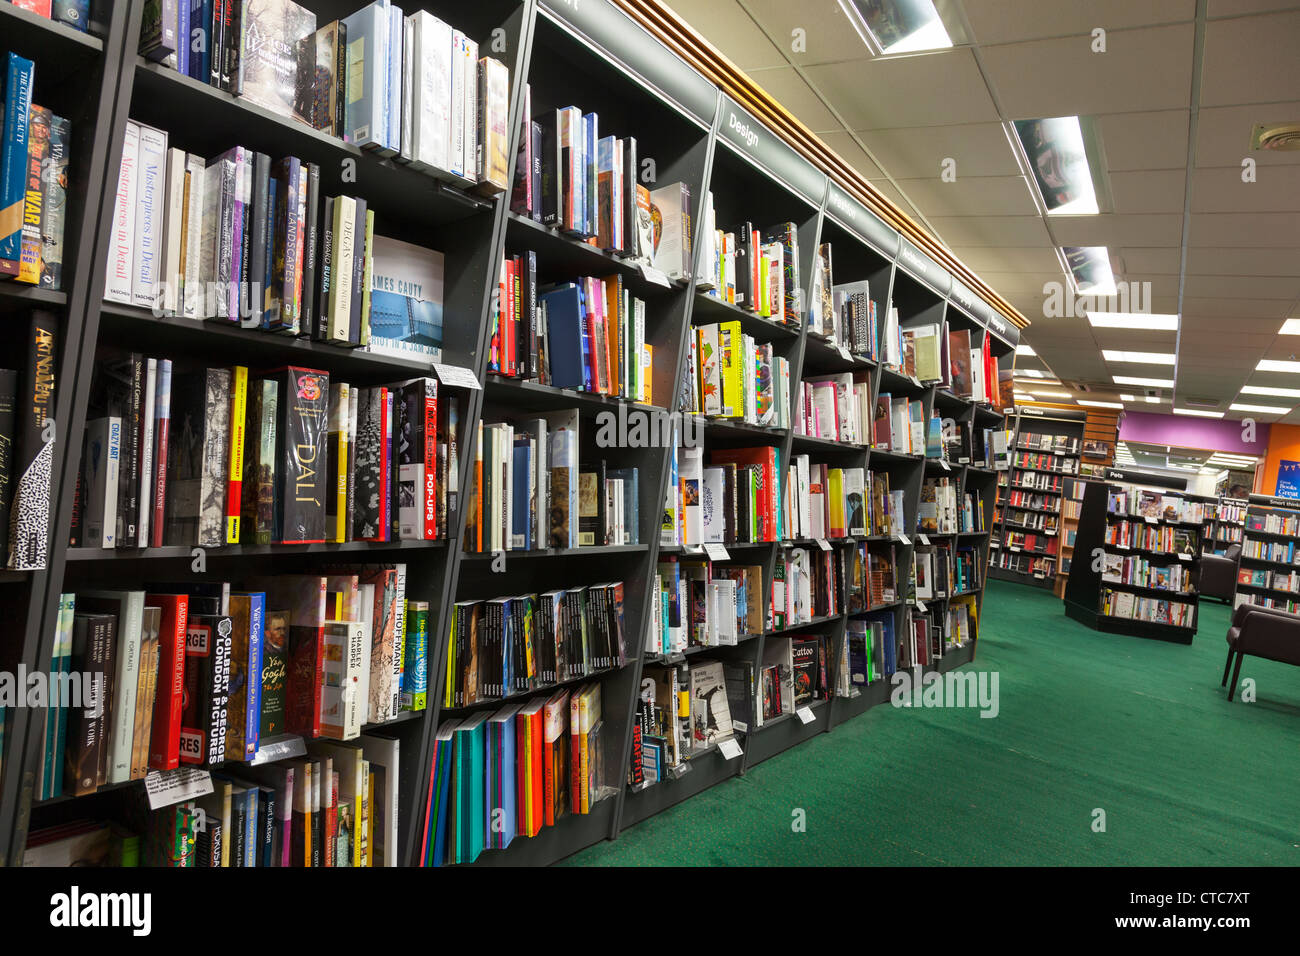 Book shelves inside a Waterstones bookstore shop books lined up and green carpet - Stock Image